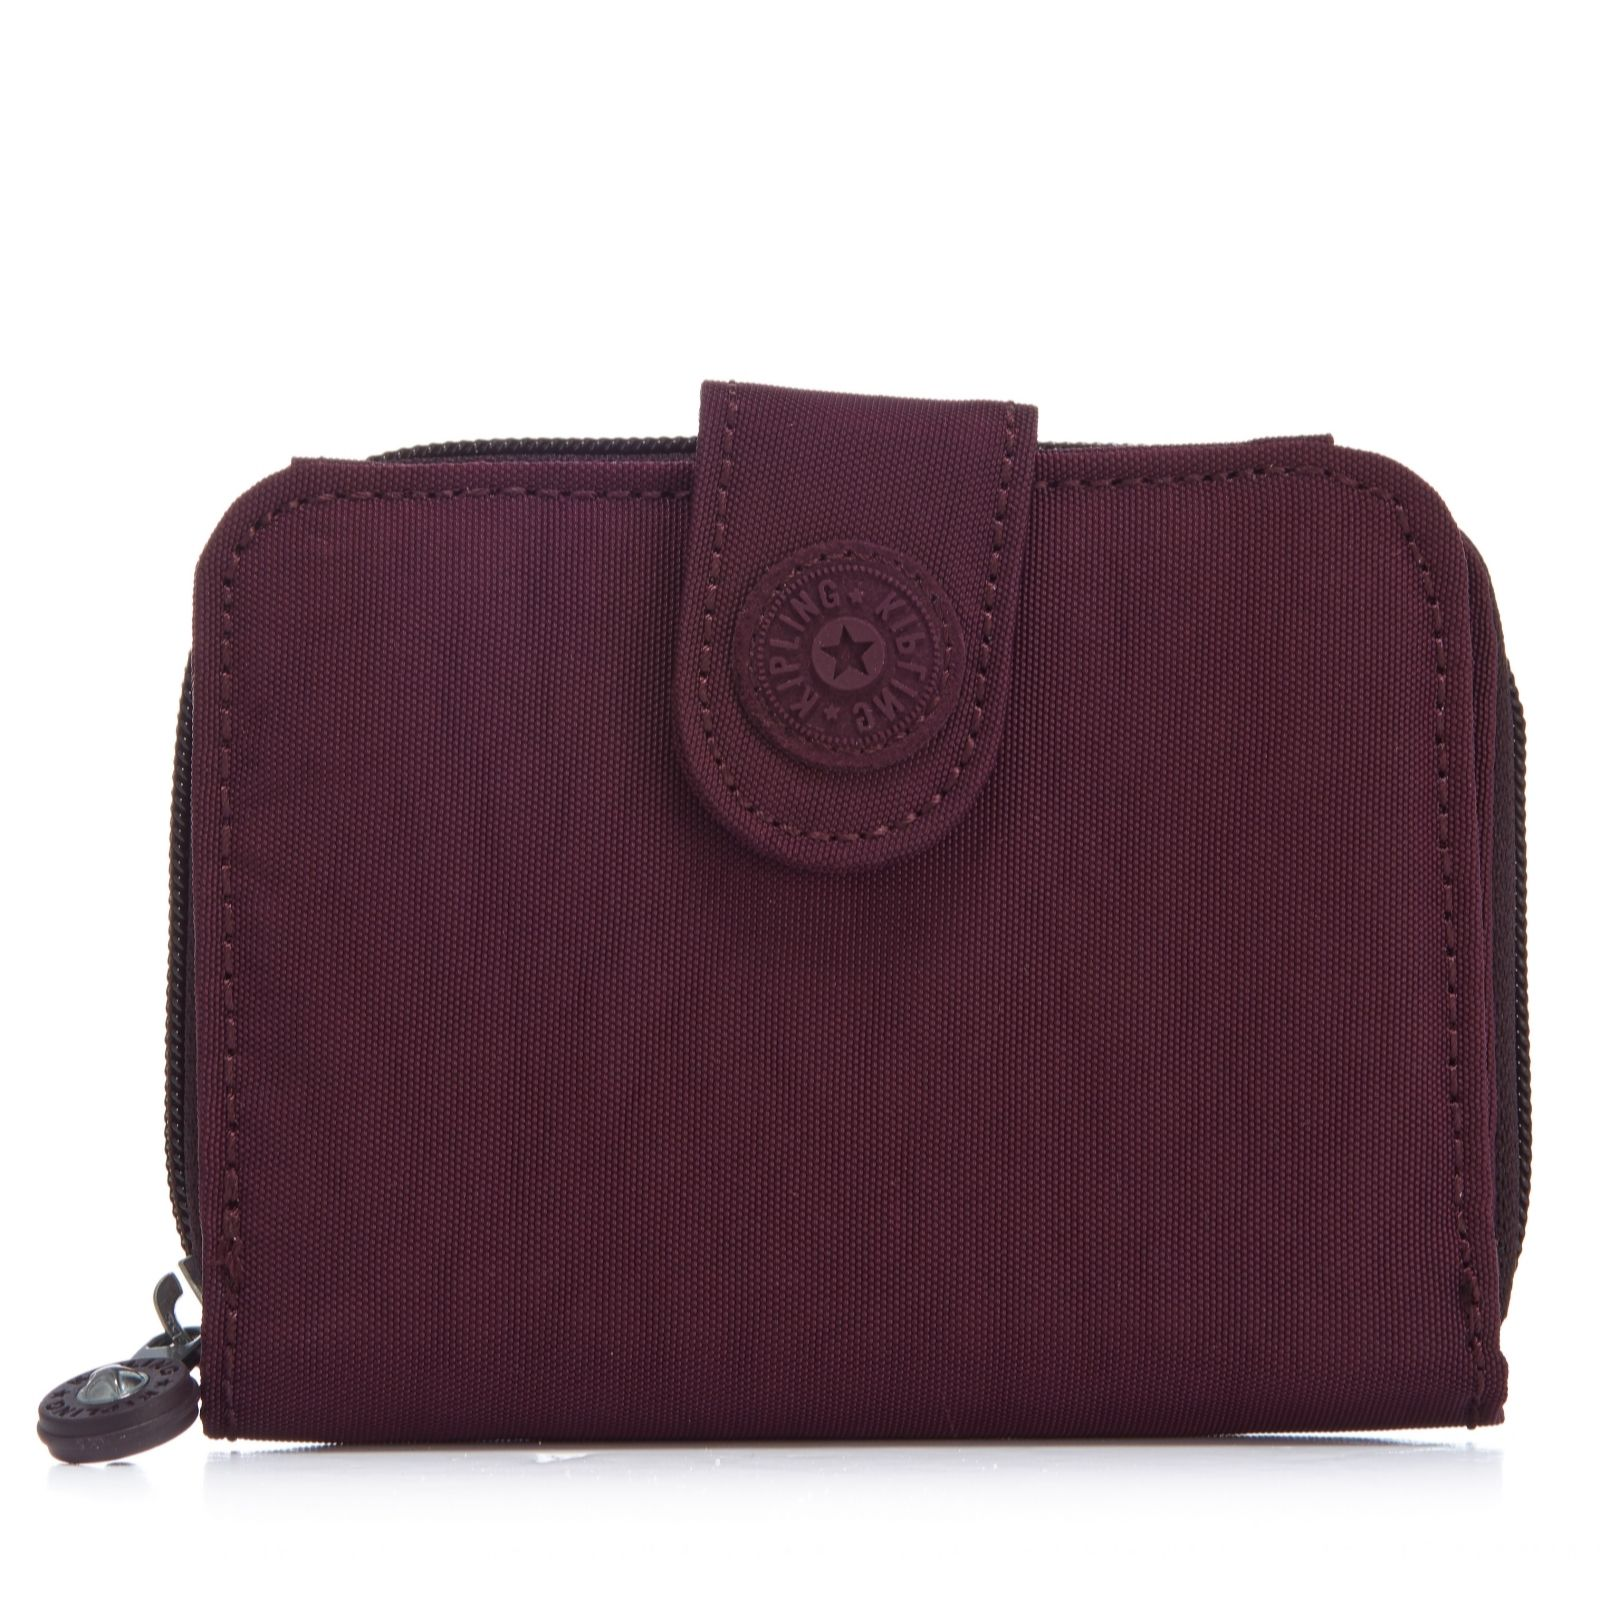 04378faf342 Kipling New Money Double Compartment Purse - Page 1 - QVC UK